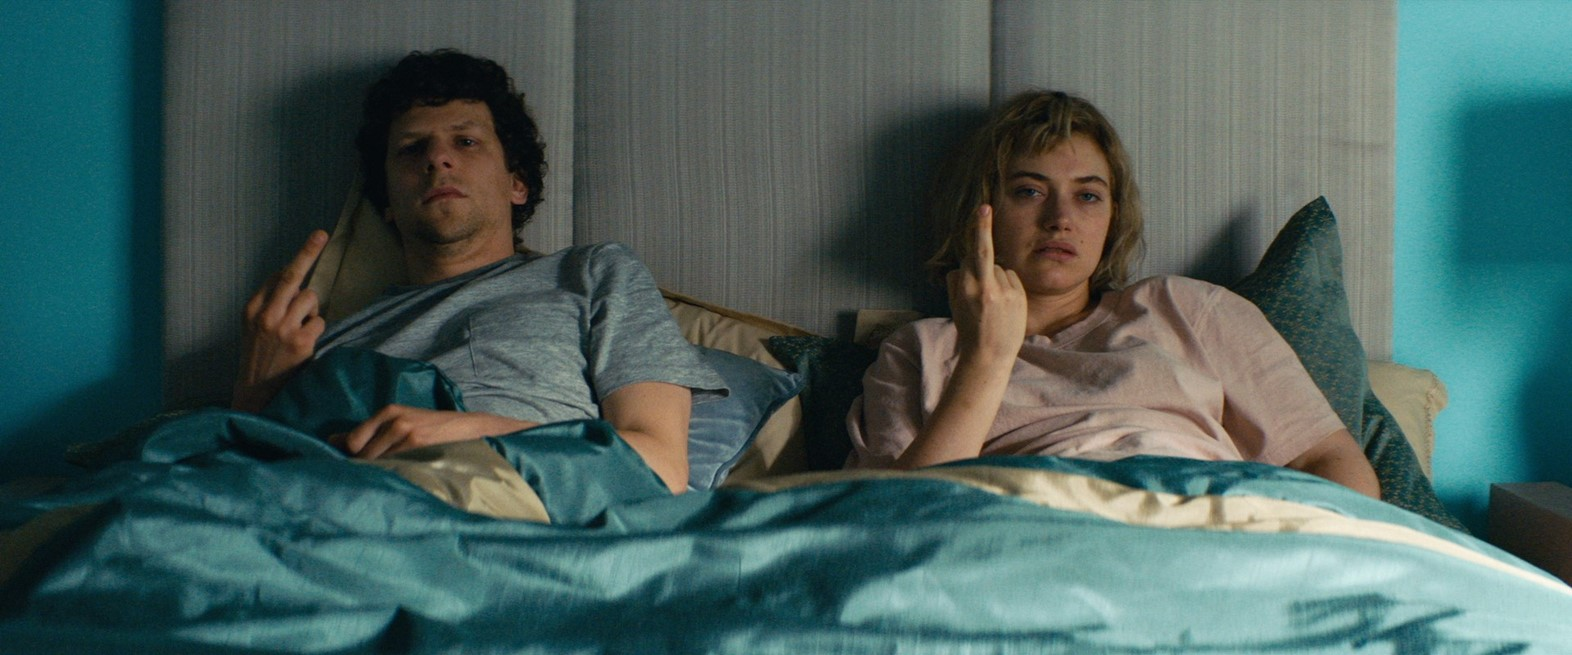 A young couple sit in bed, both flipping the bird.